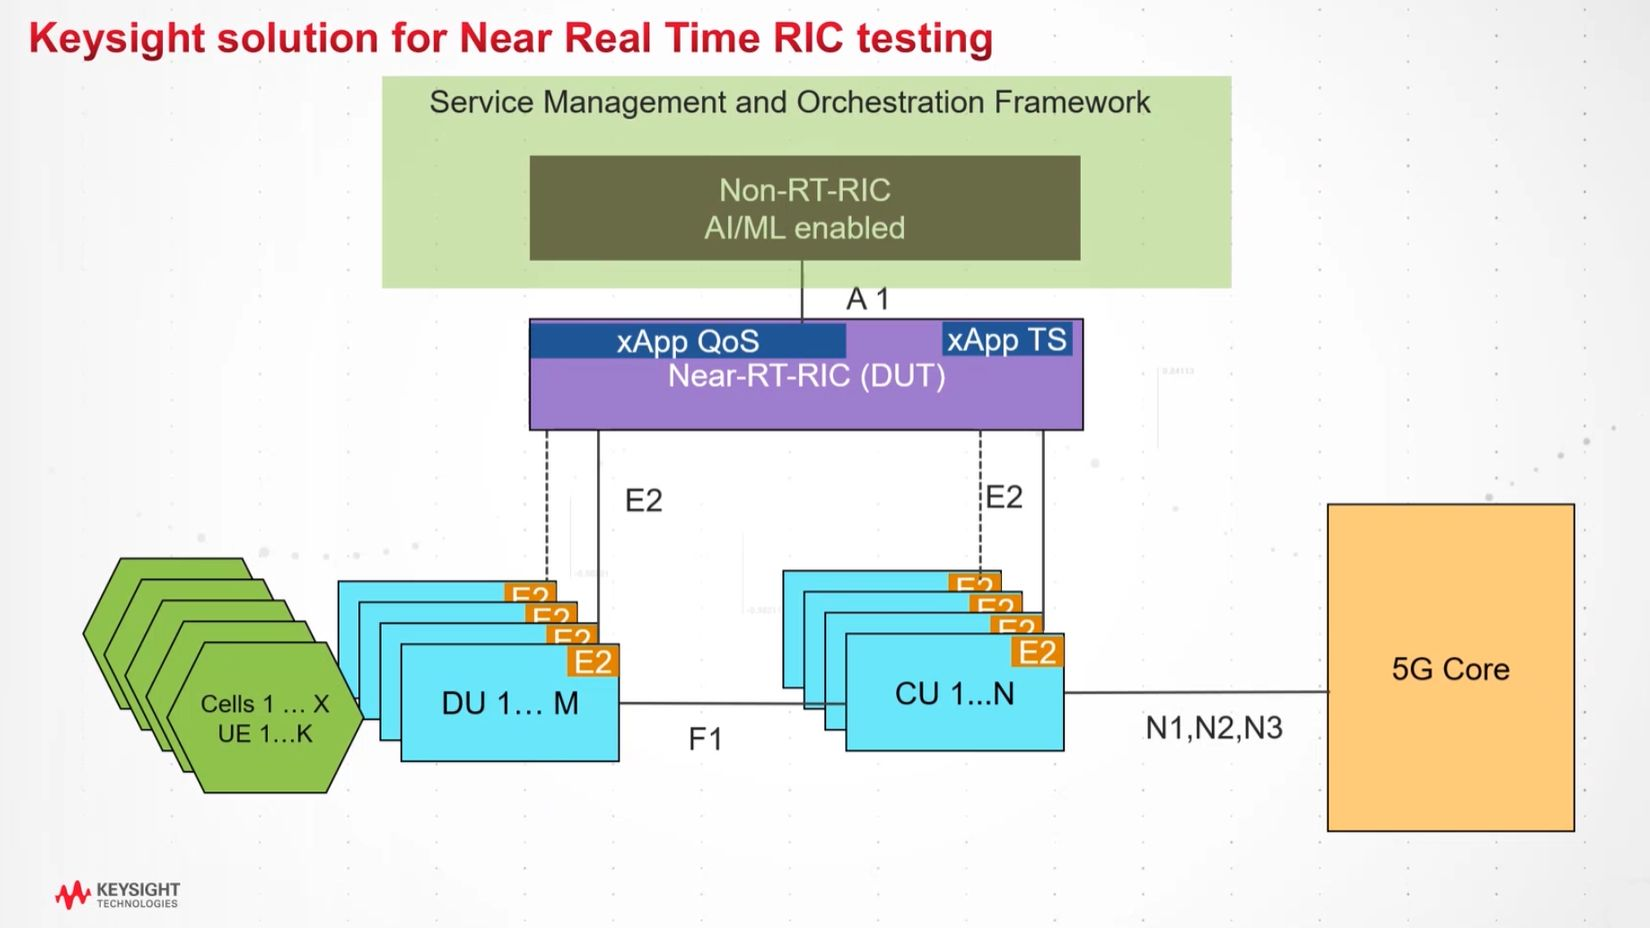 Near Real-Time RIC Testing with Keysight's RICtest